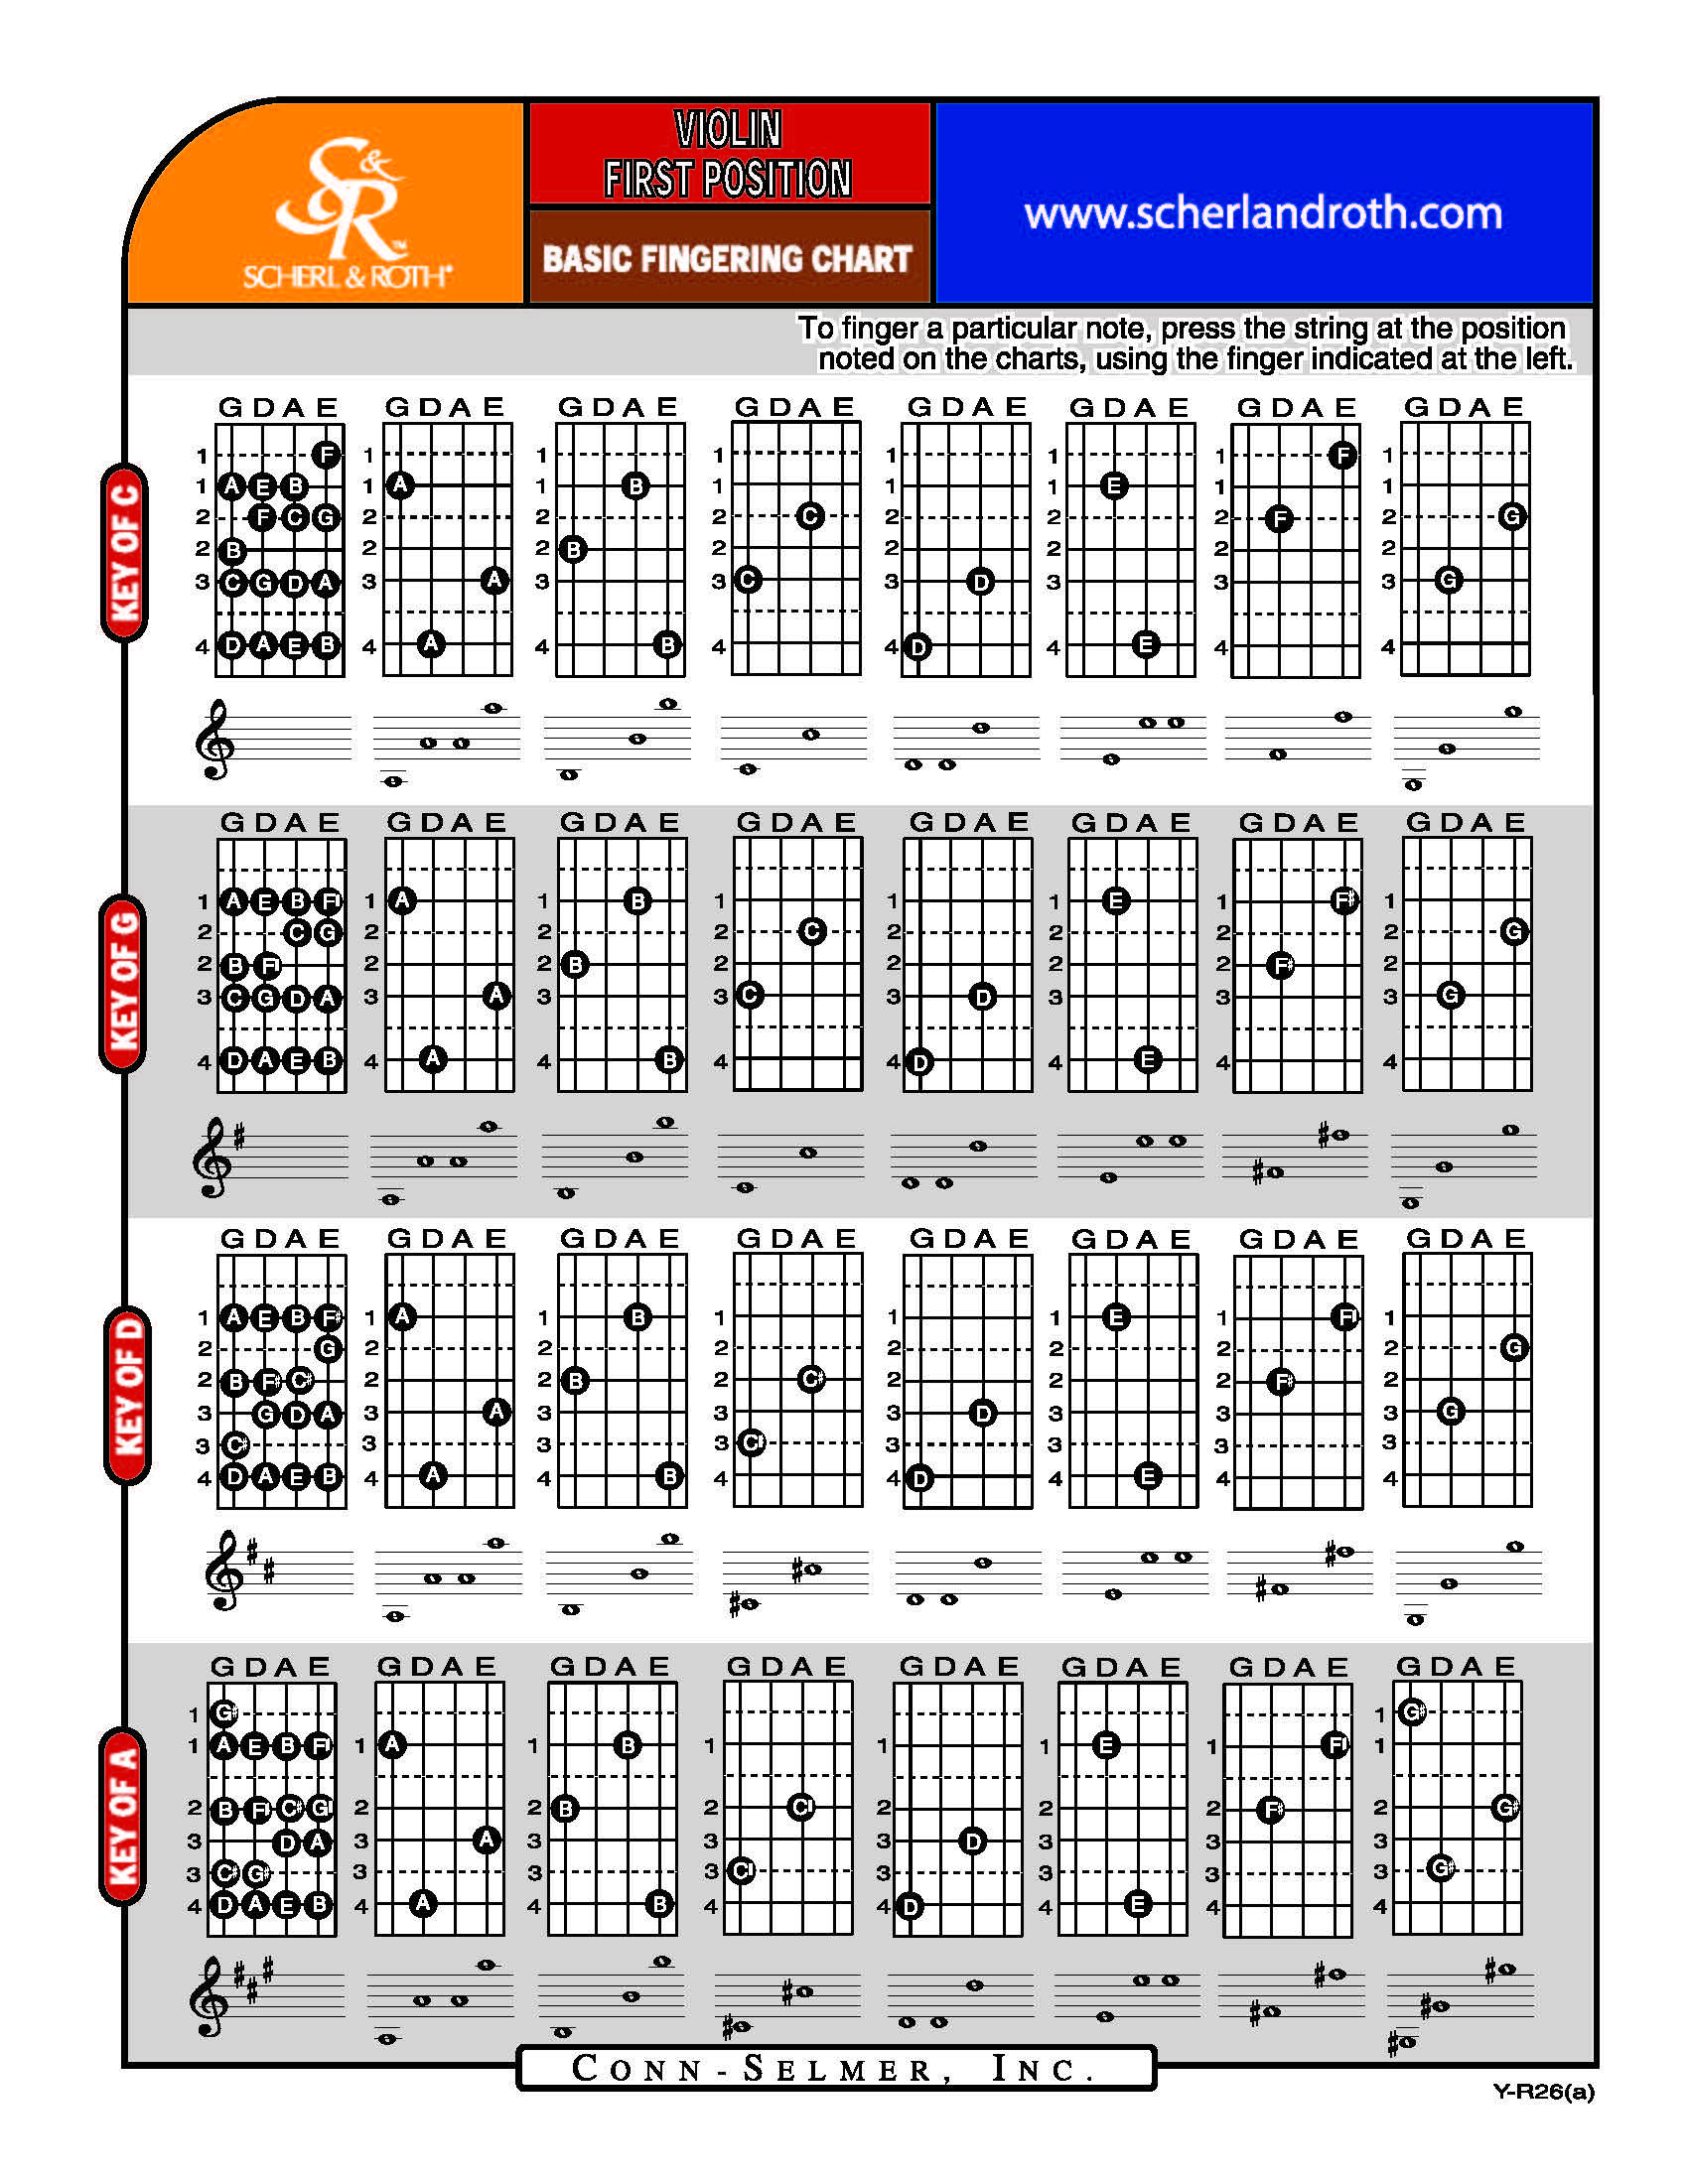 Conn Selmer Violin Basic Fingering Charts 1st Position Page 1.